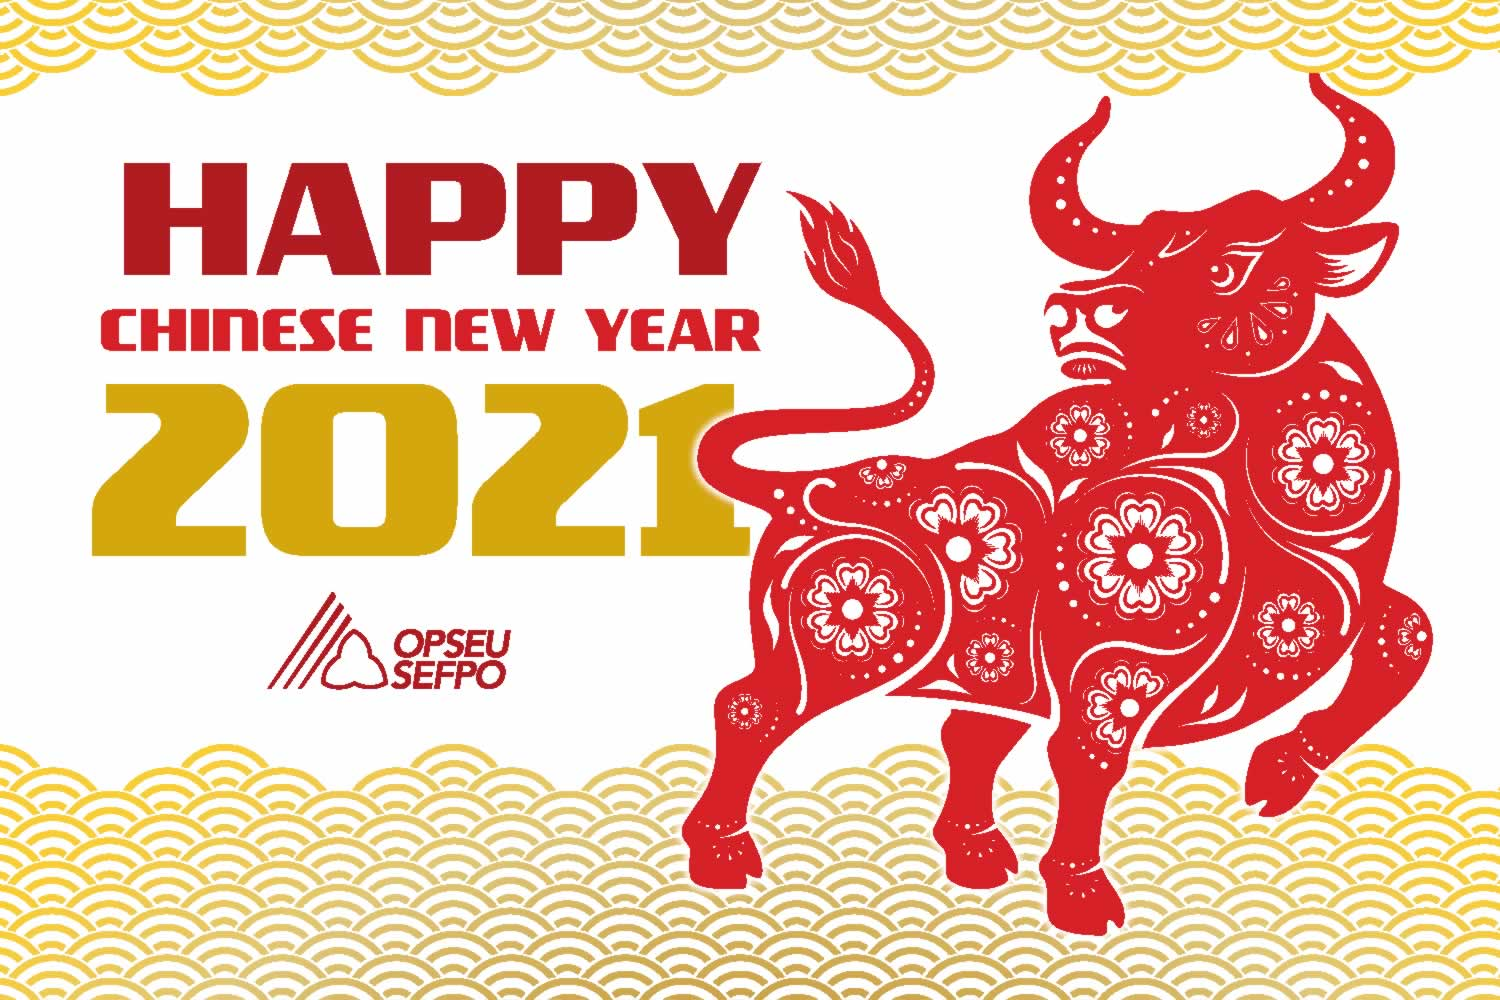 Happy Chinese New Year 2021, with decorative image of an Ox and OPSEU SEFPO logo